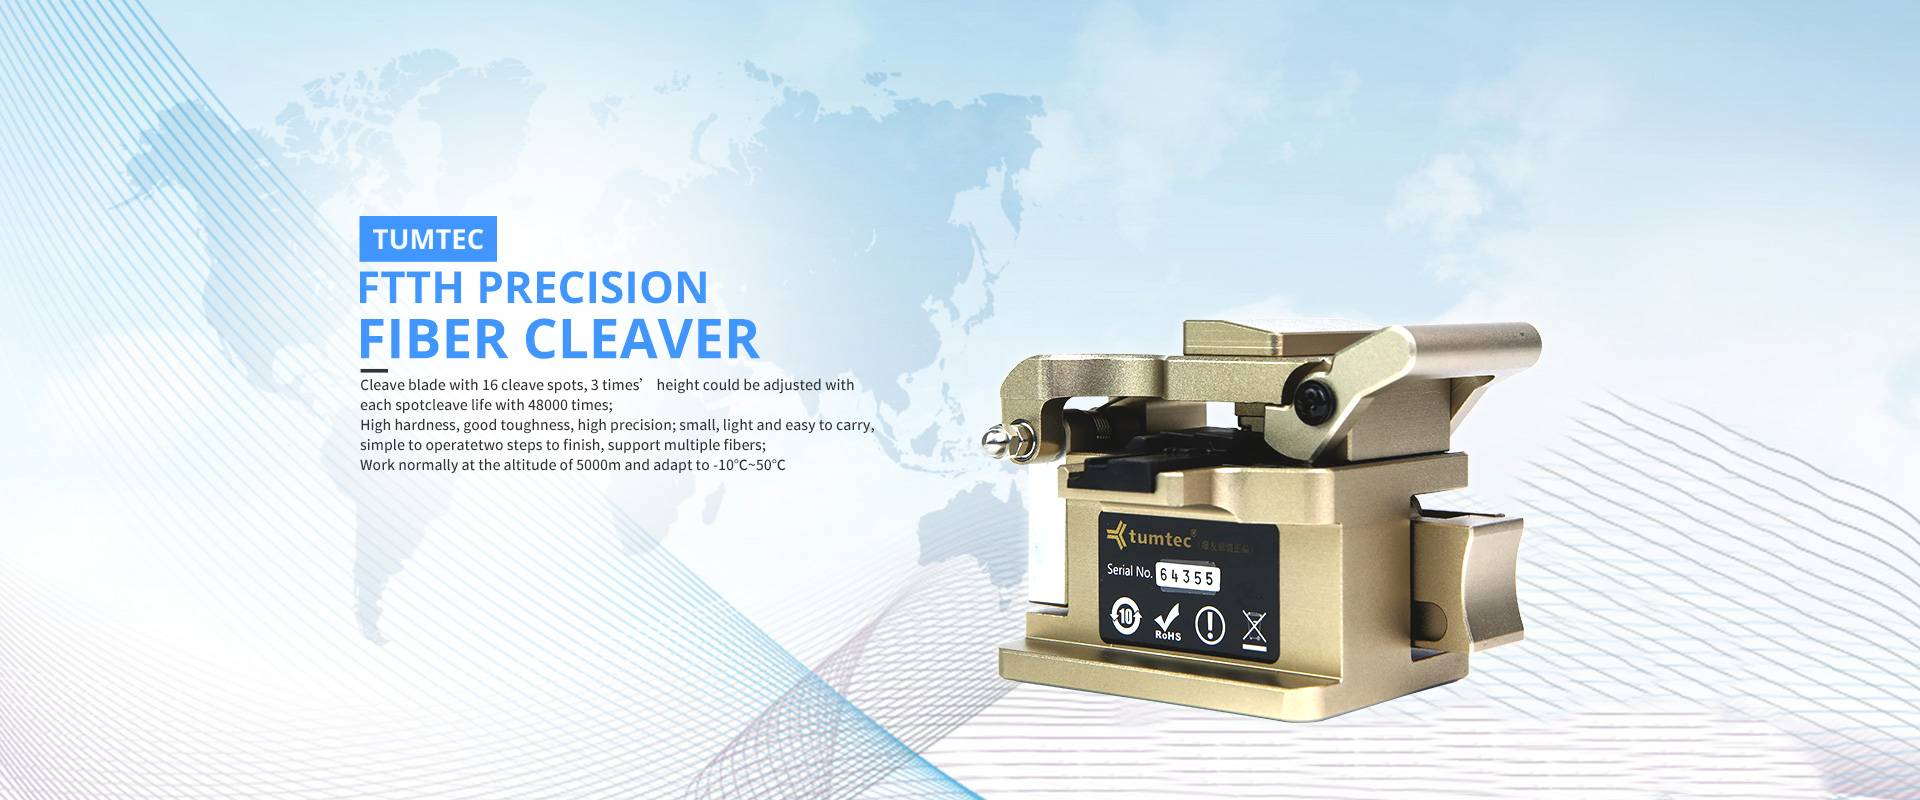 Precision optical fiber cleaver - smart and portable